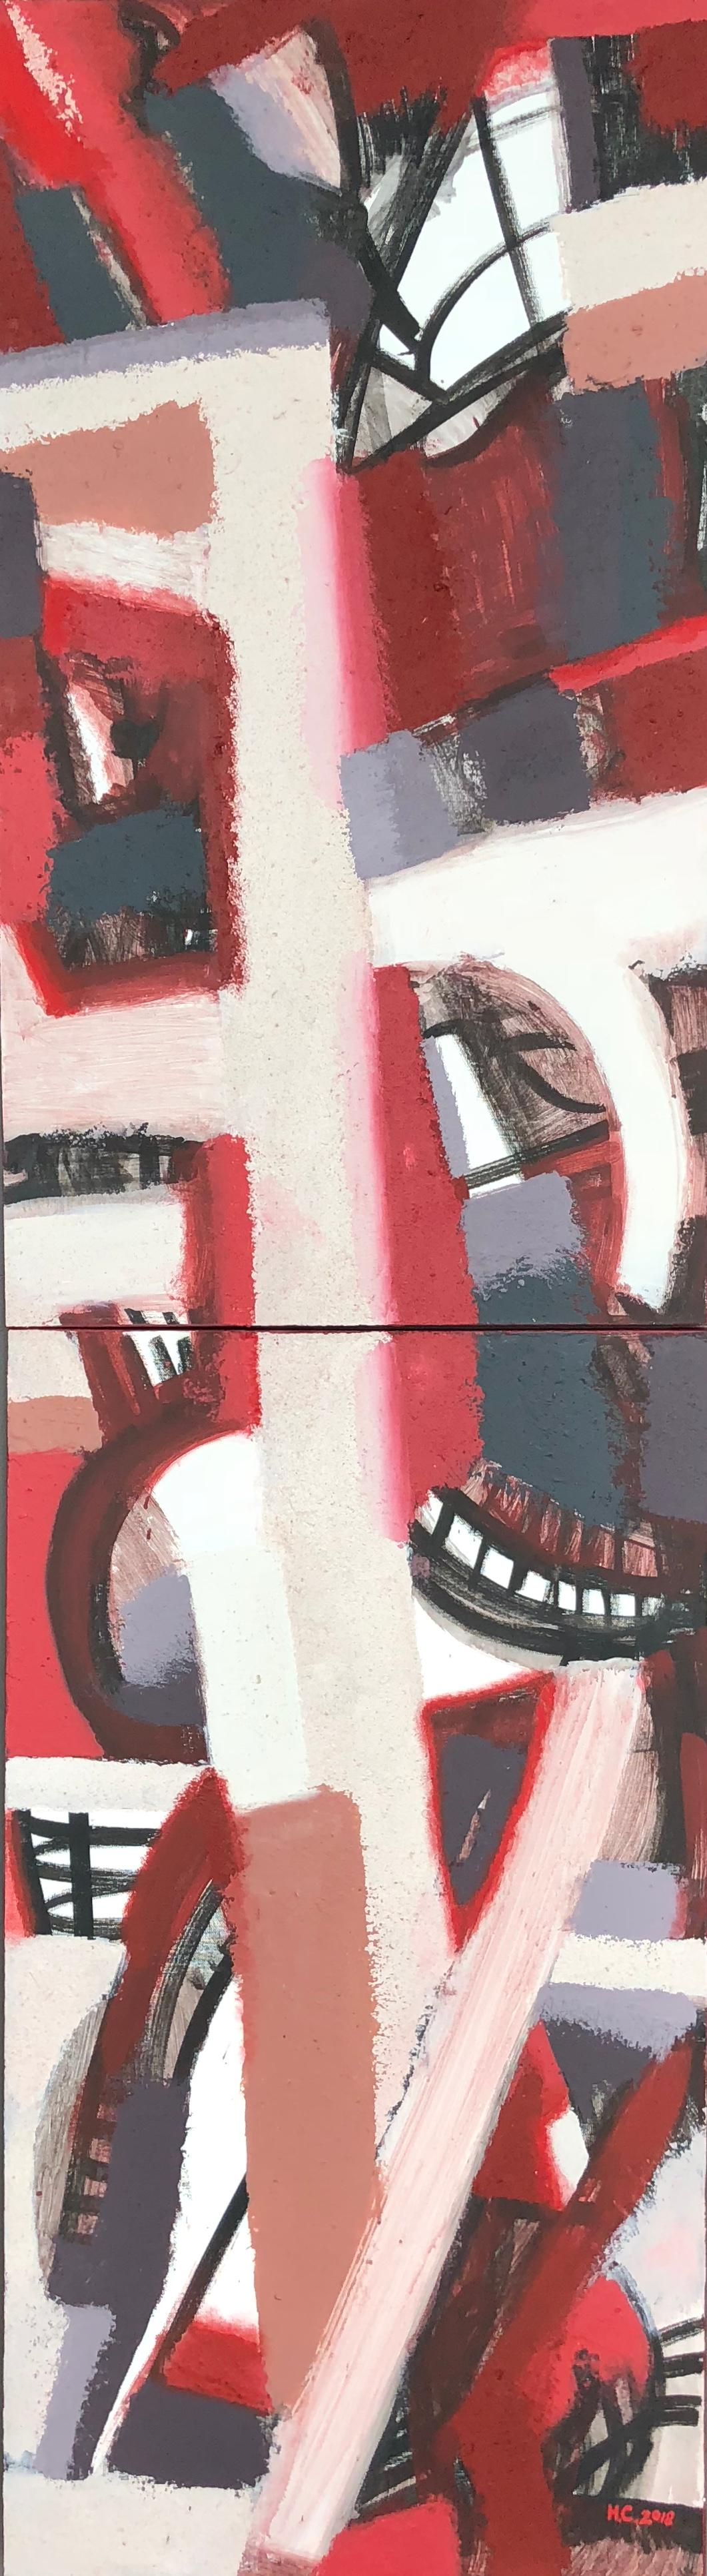 Topography from the Vertical Series - abstract art in red, black and burgundy